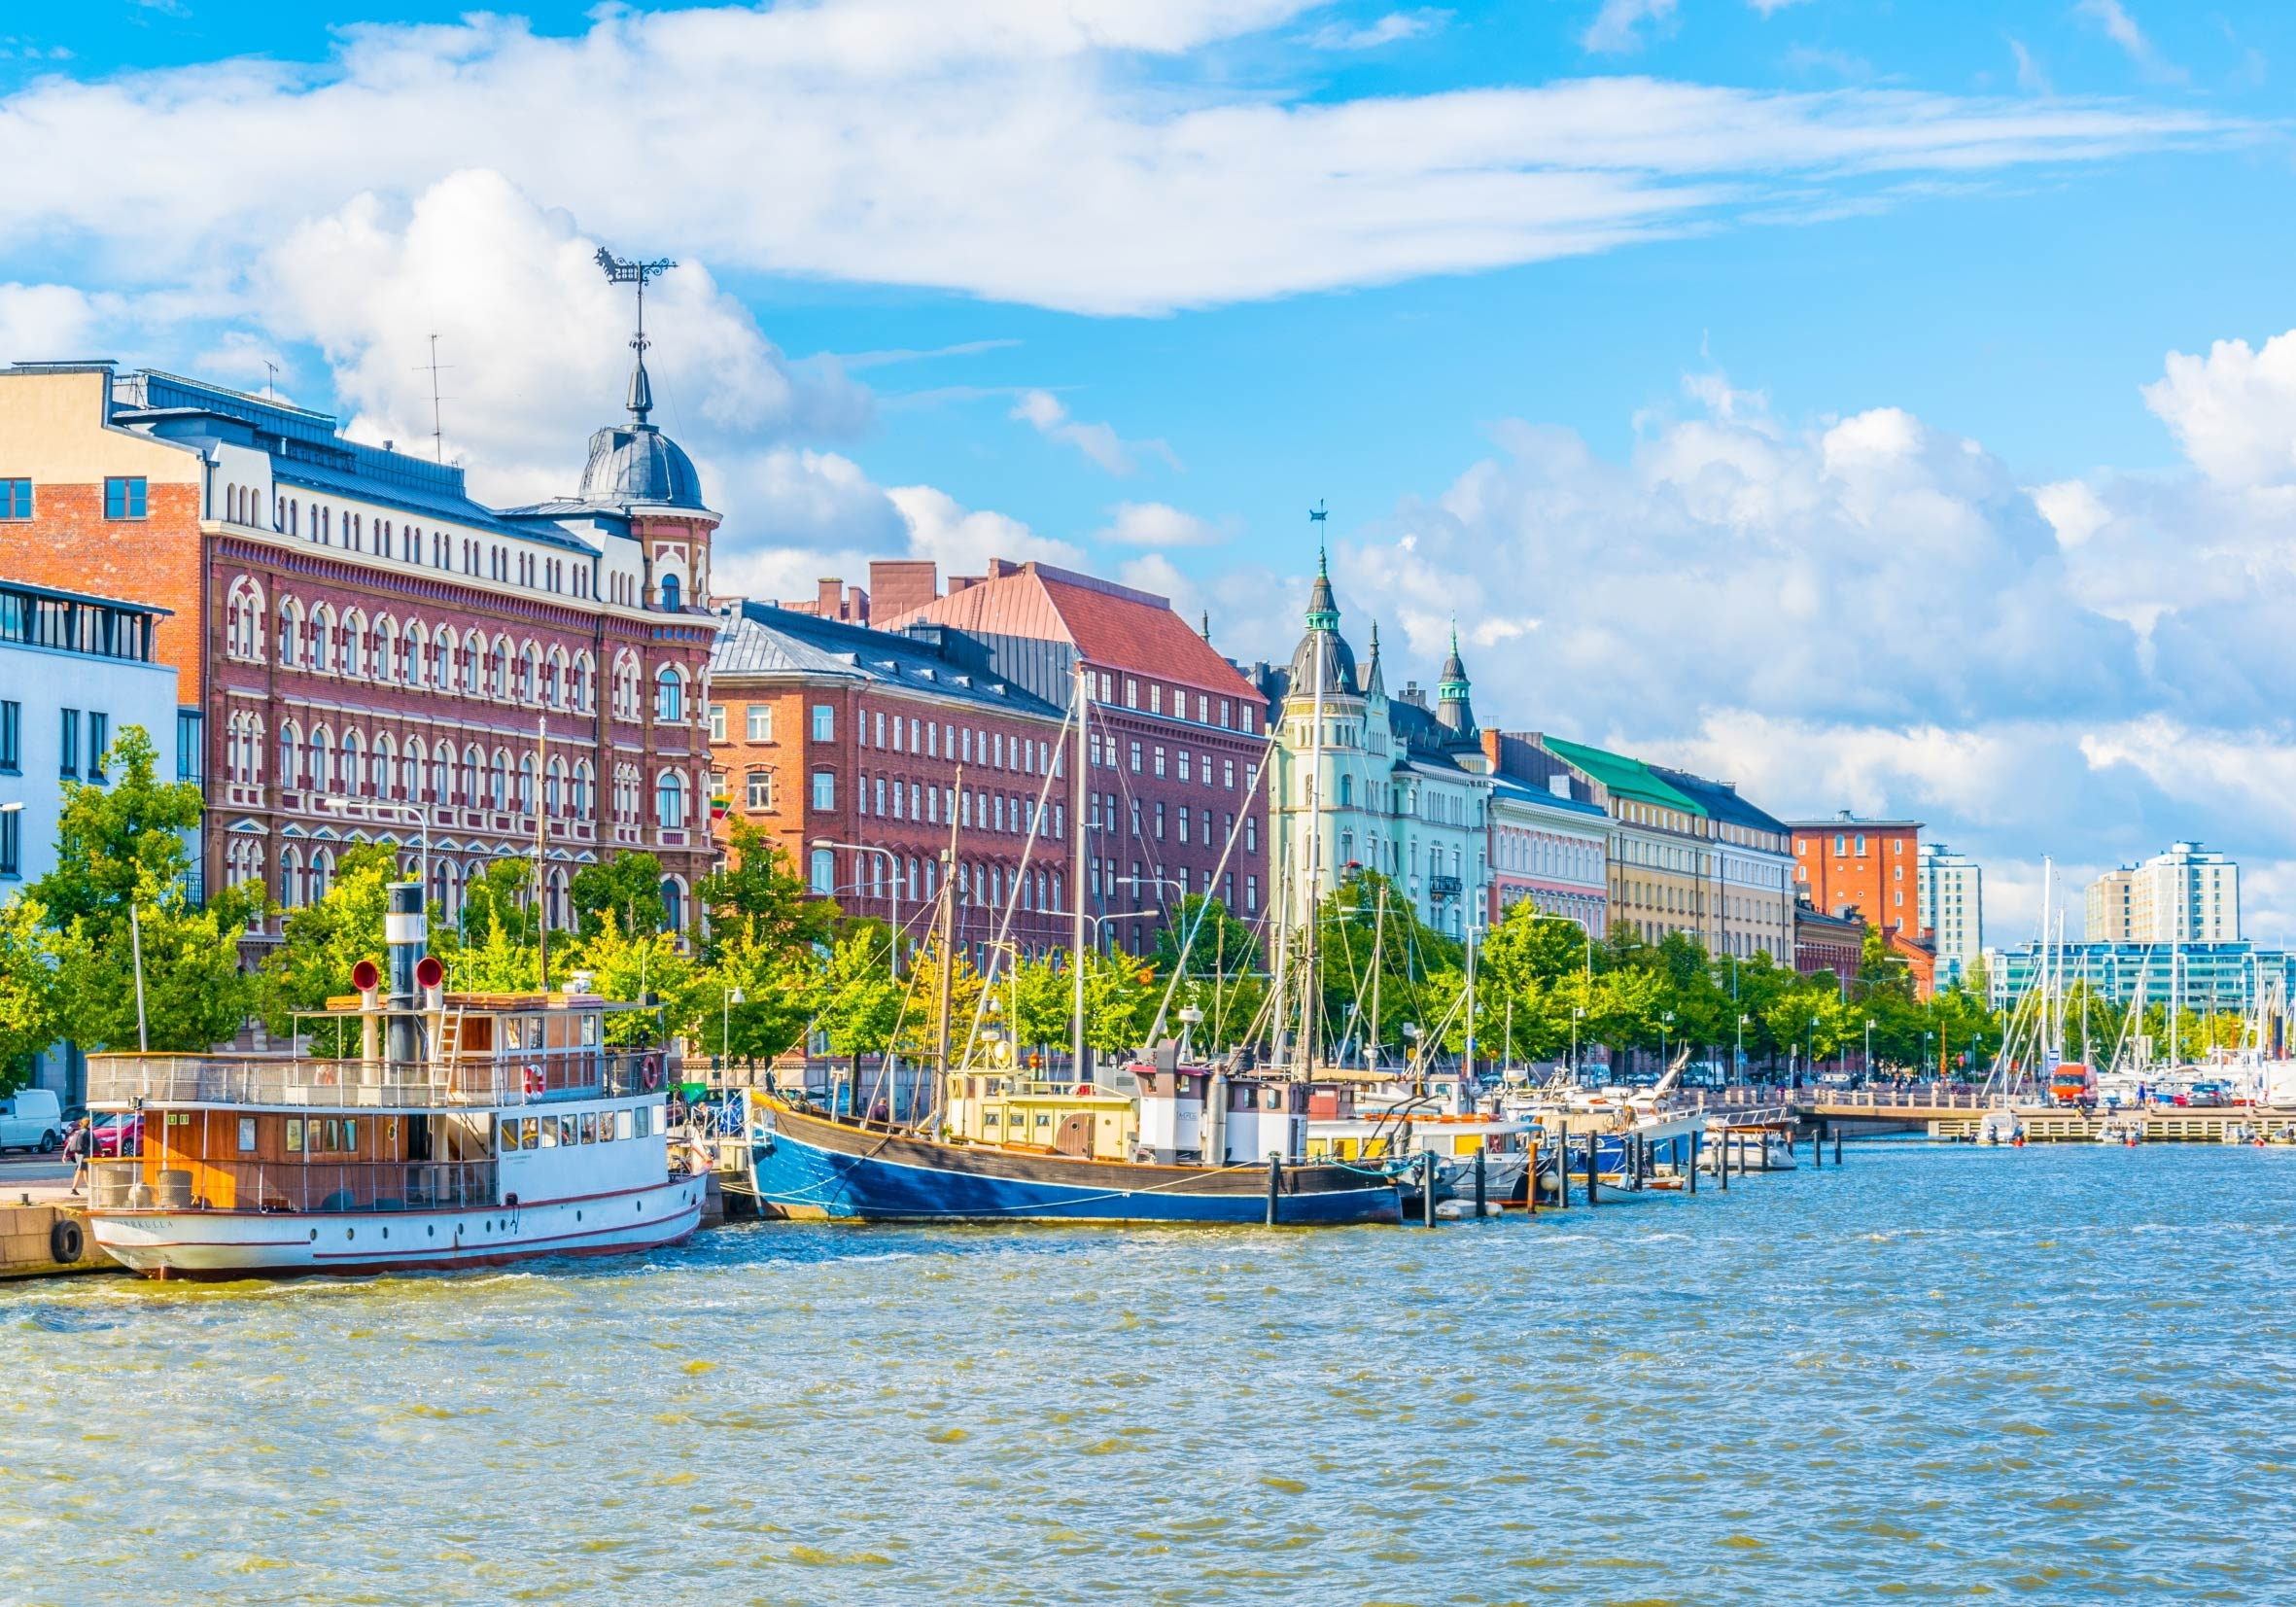 A view of Helsinki, Finland from the river